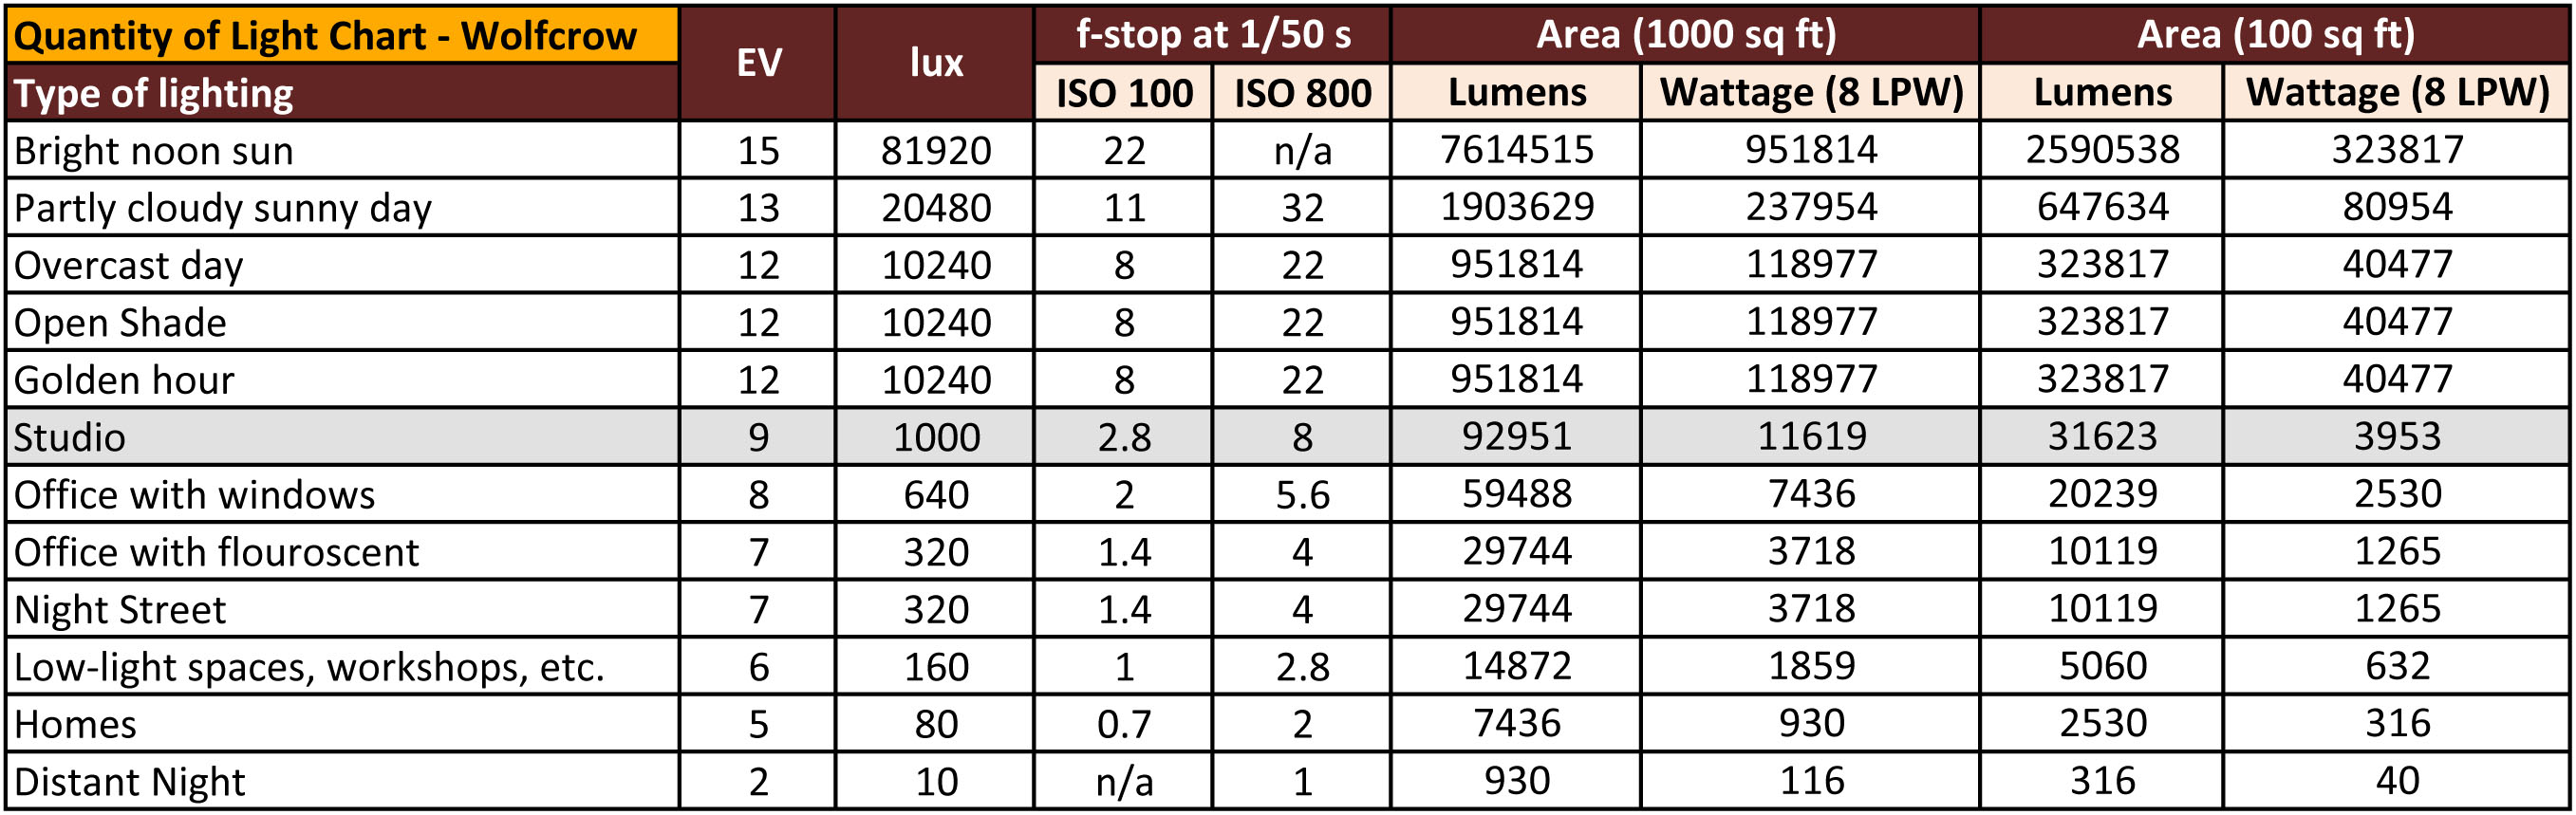 H8 Fluorescent L s And Ballasts moreover Bulb Colour Temperature Kelvin Chart besides Hoeveel Led L en Moet Ik Hebben furthermore Led Light Be es Extremely Hot together with Led Lighting. on lamp lumens chart